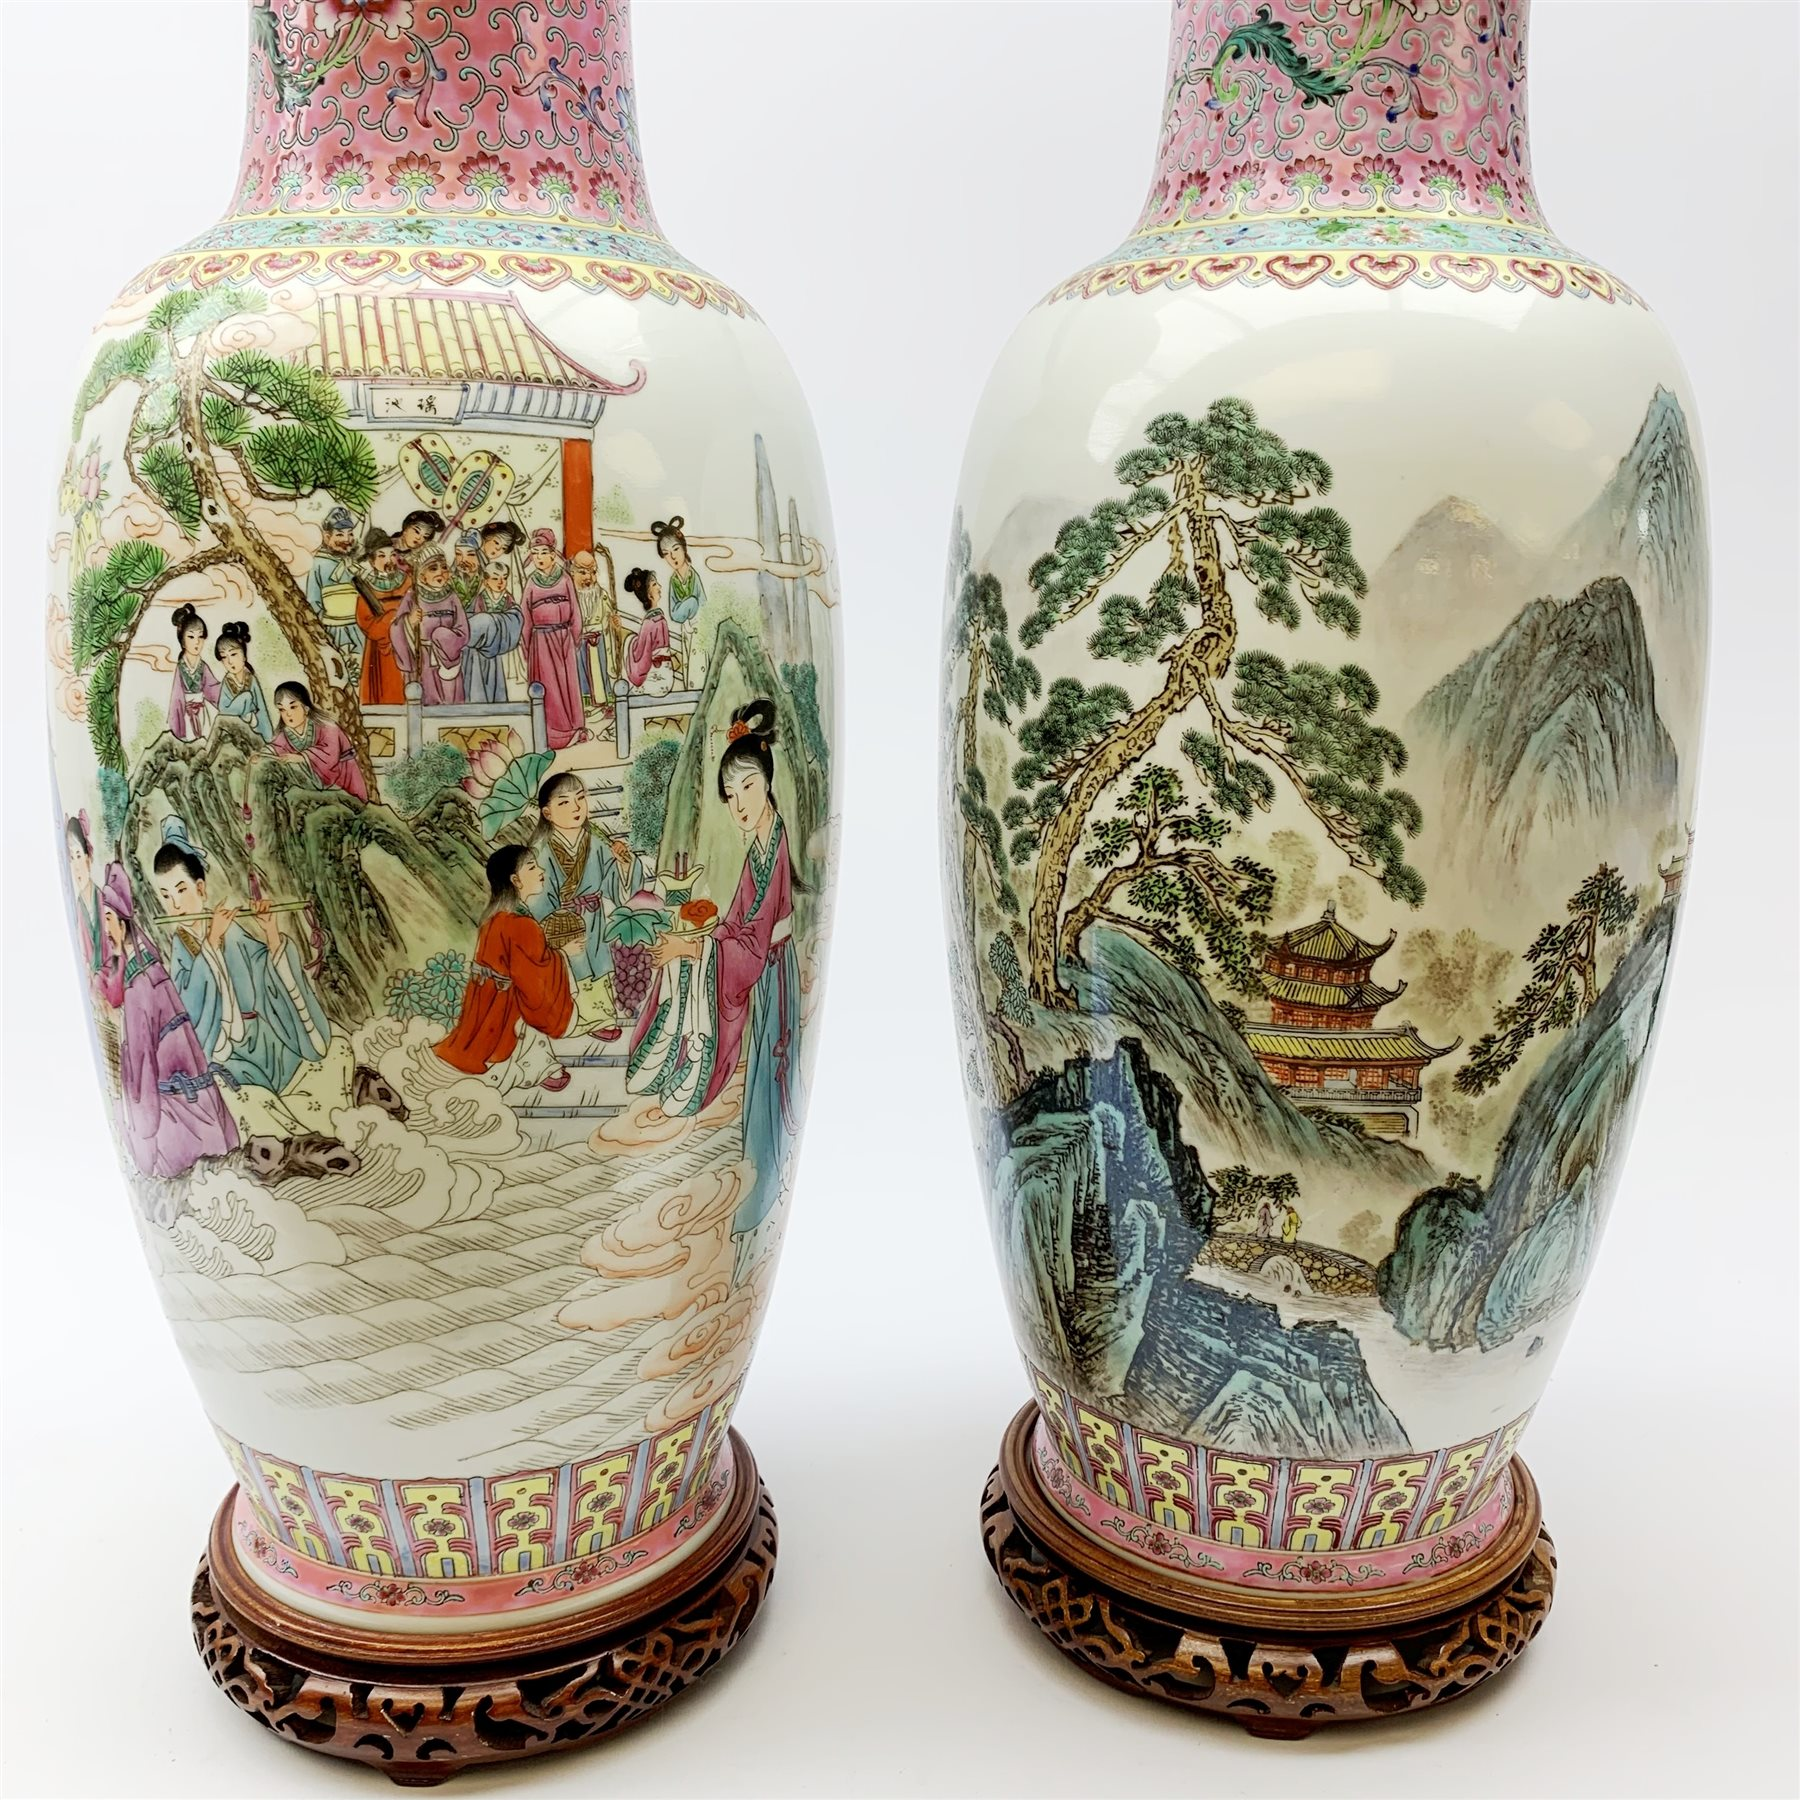 A pair of large Chinese famile rose style vases, one decorated with figural scene, the other with mo - Image 2 of 5